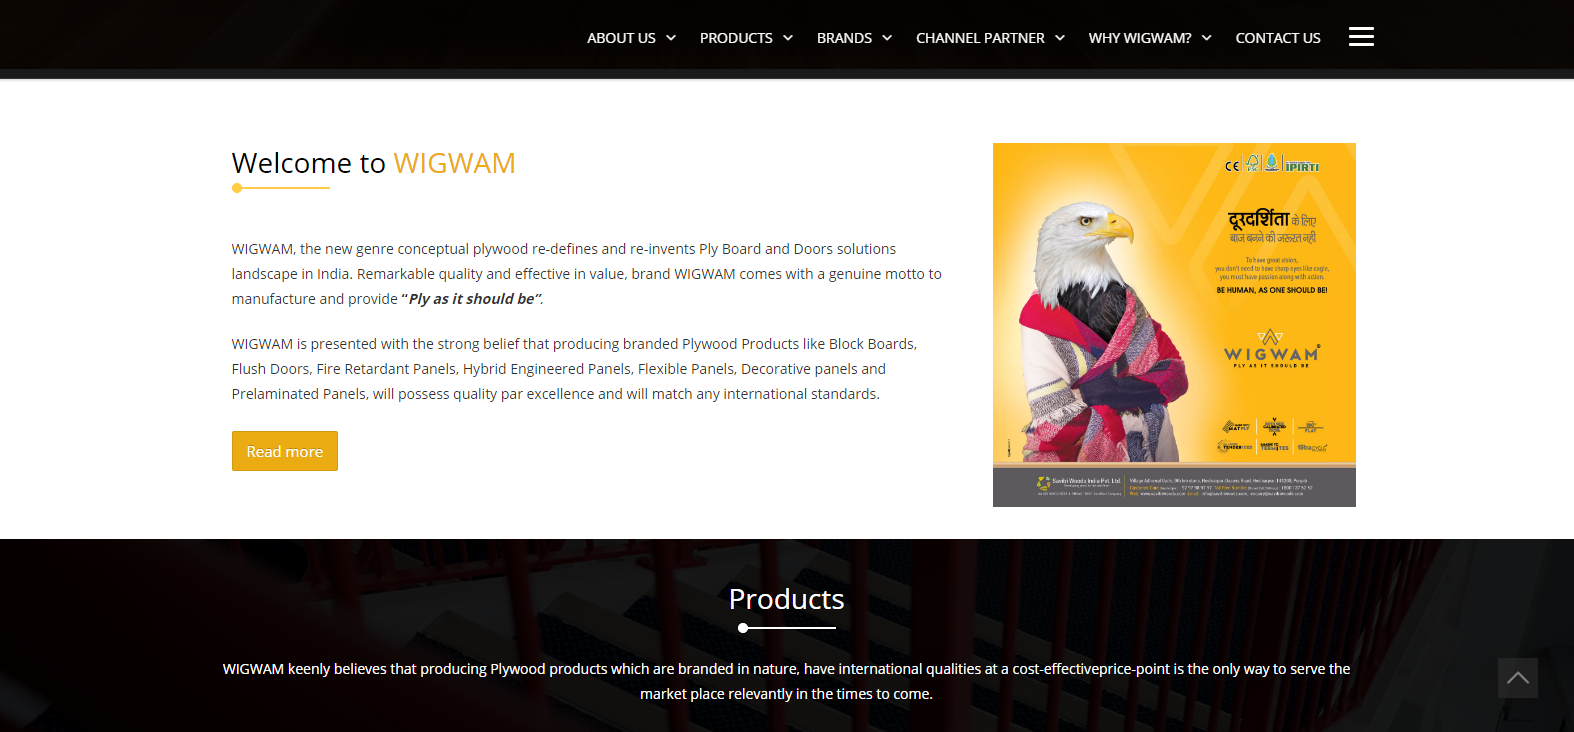 Wigwam Plywood Company Best Plywood Brand Available in India